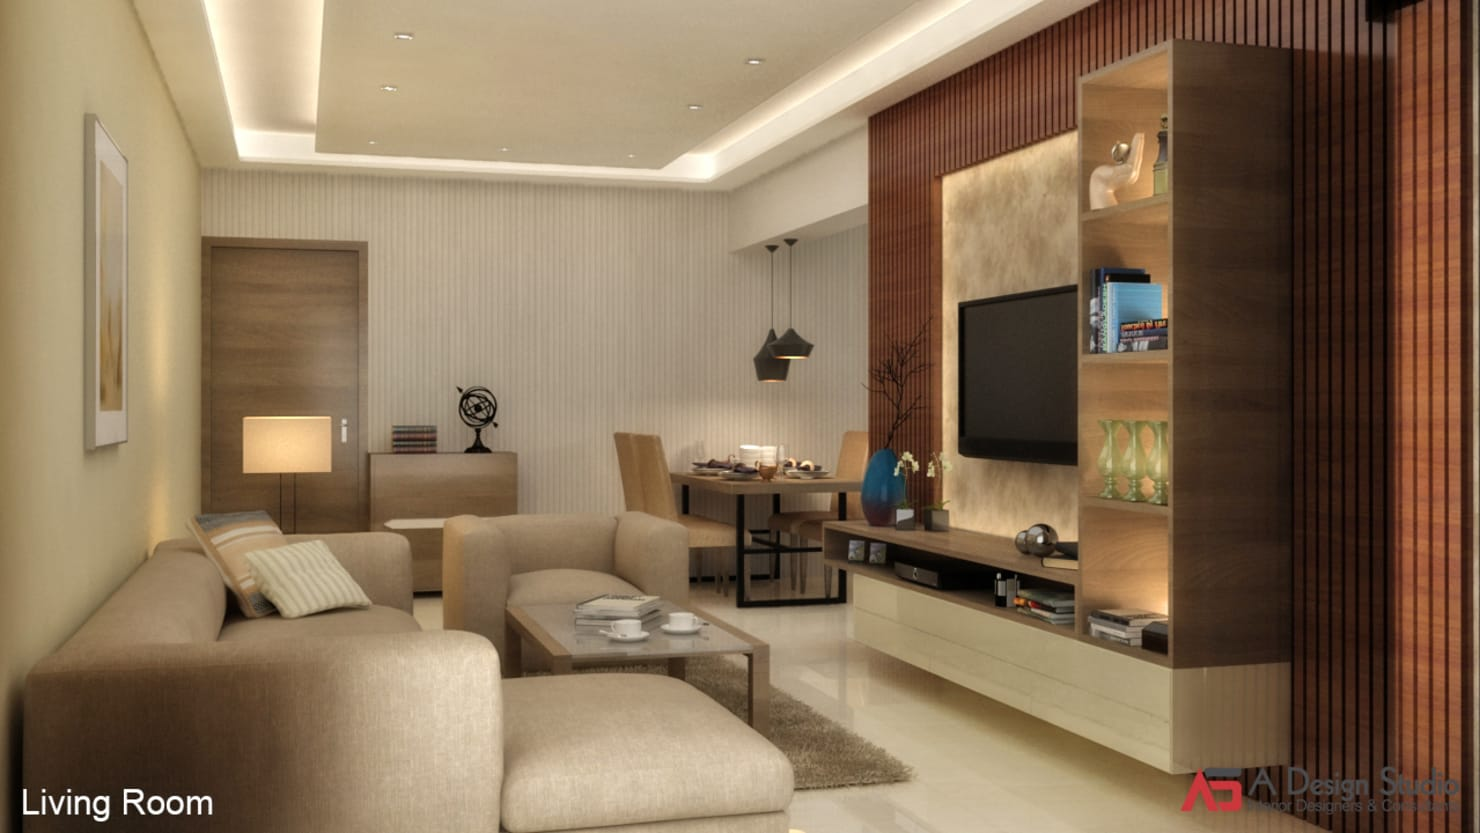 Astonishing Flipboard The Pros And Cons Of A Leather Sofa Versus A Beatyapartments Chair Design Images Beatyapartmentscom